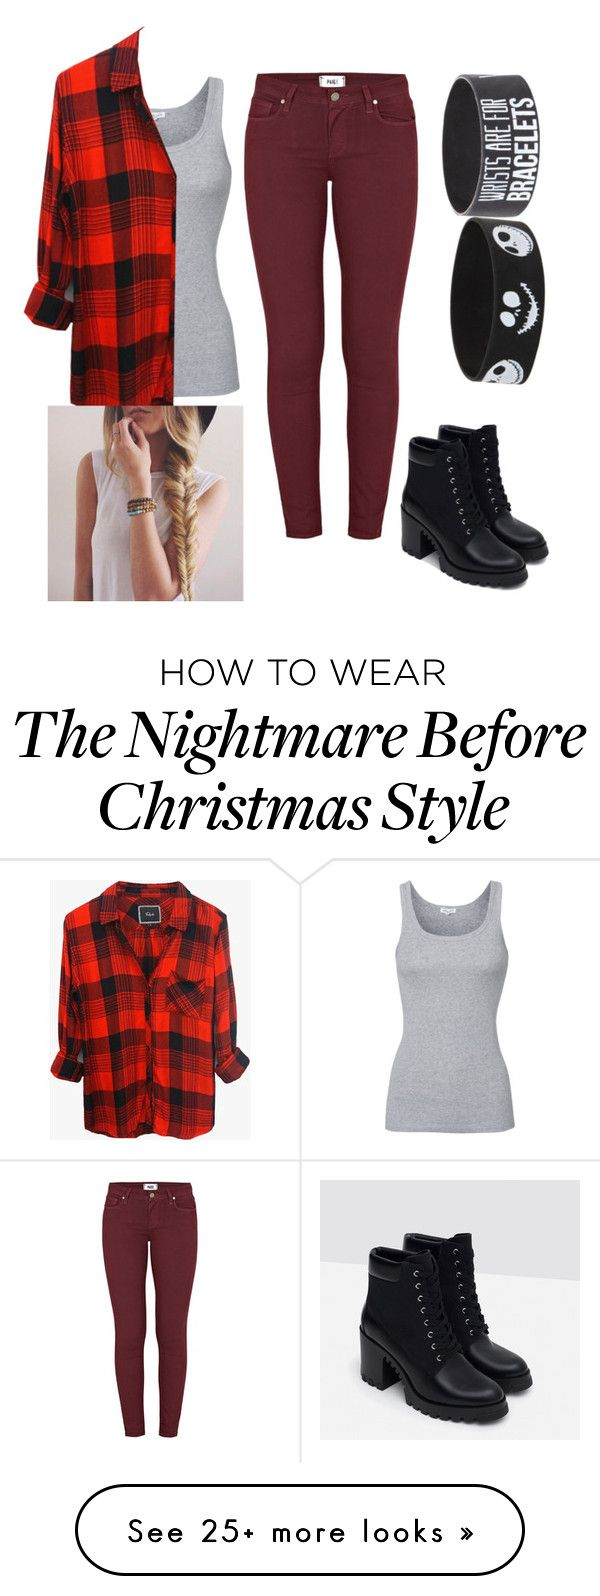 """Untitled #83"" by o2llover1 on Polyvore featuring Splendid, Rails, Paige Denim, Disney and Zara"